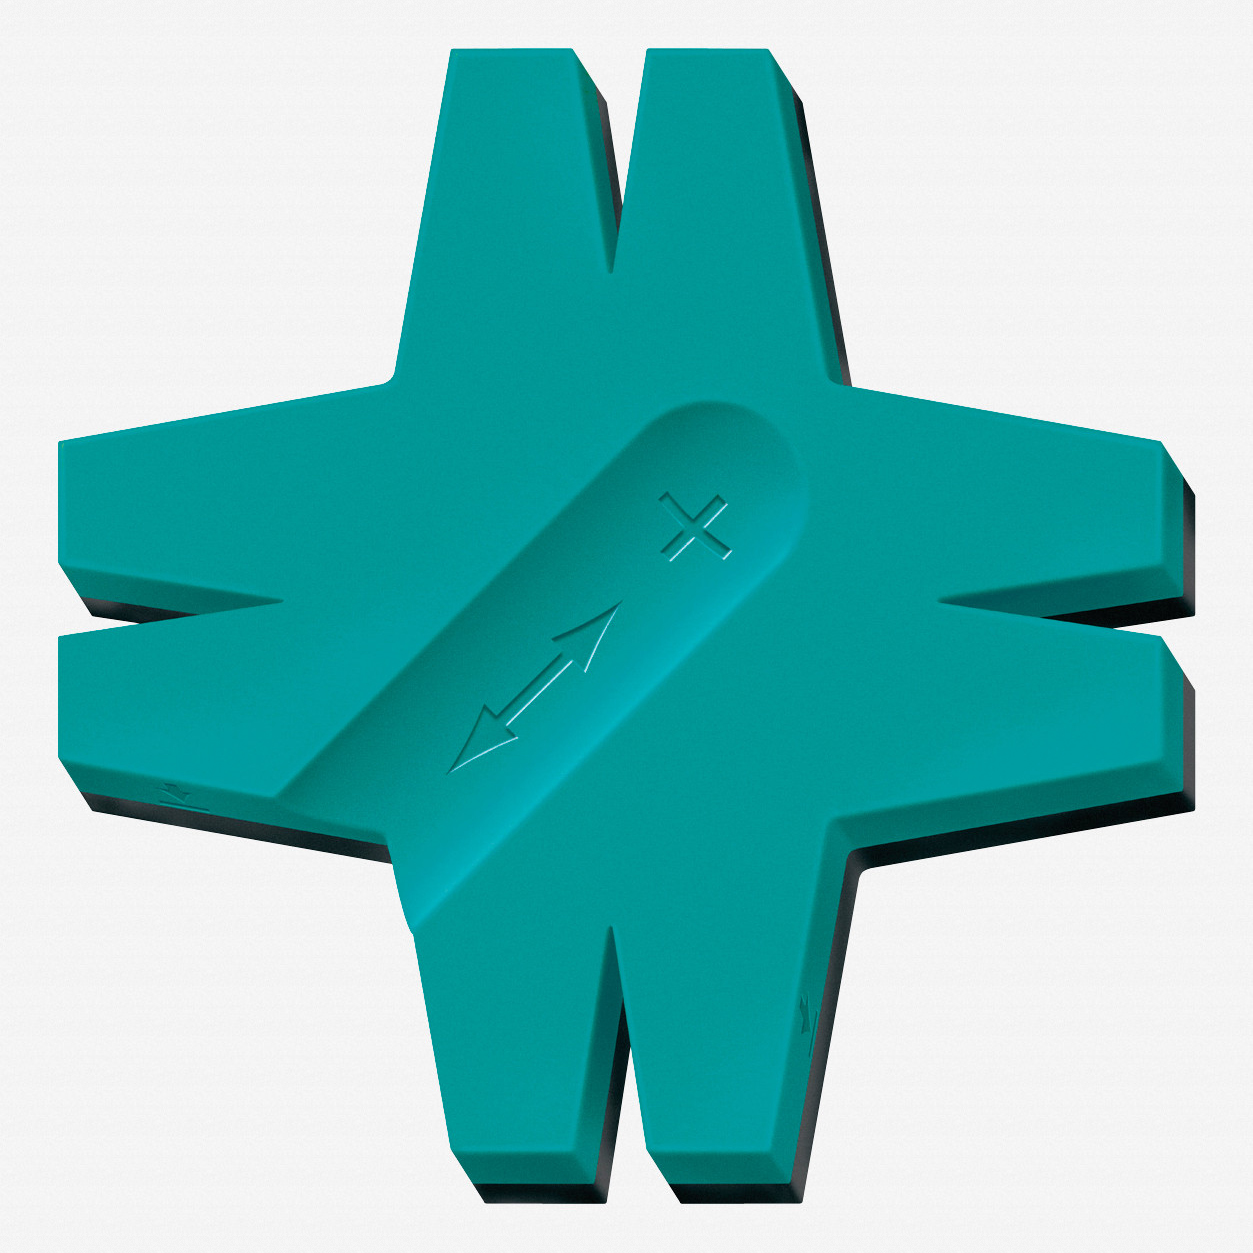 Wera 073403 Star - Magnetizer / Demagnetizer - KC Tool